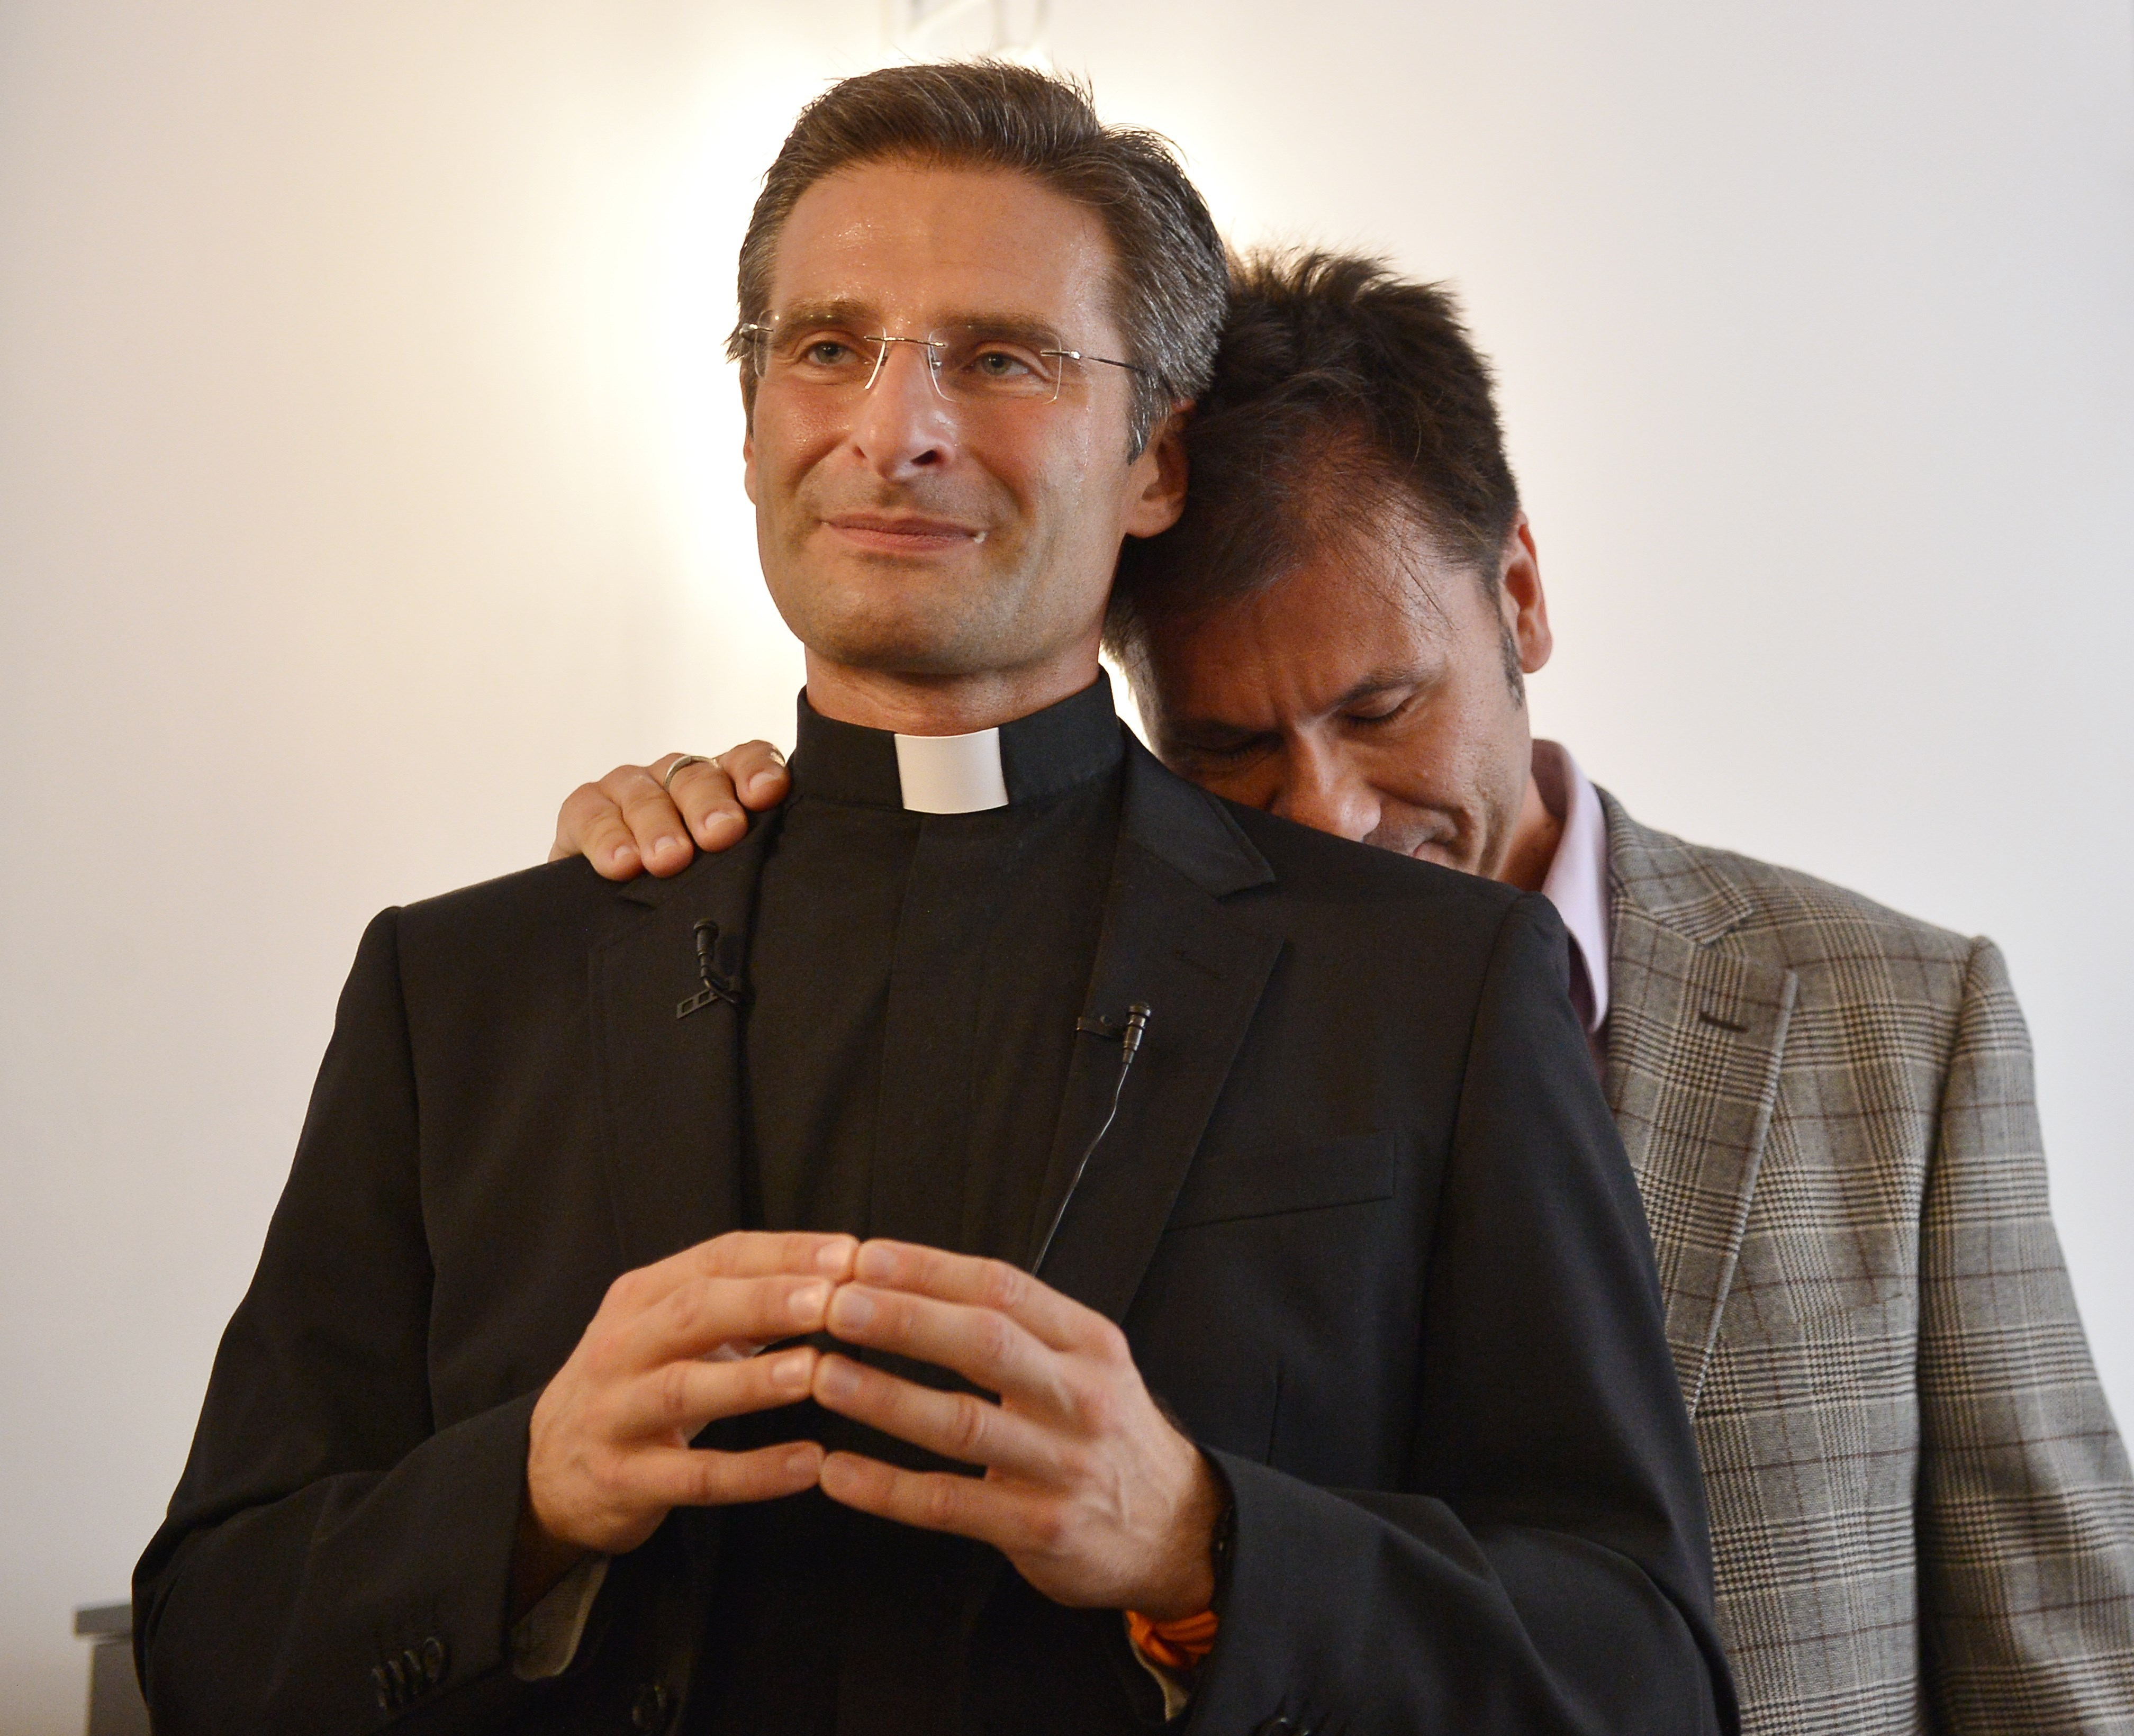 Homosexual priests naked images